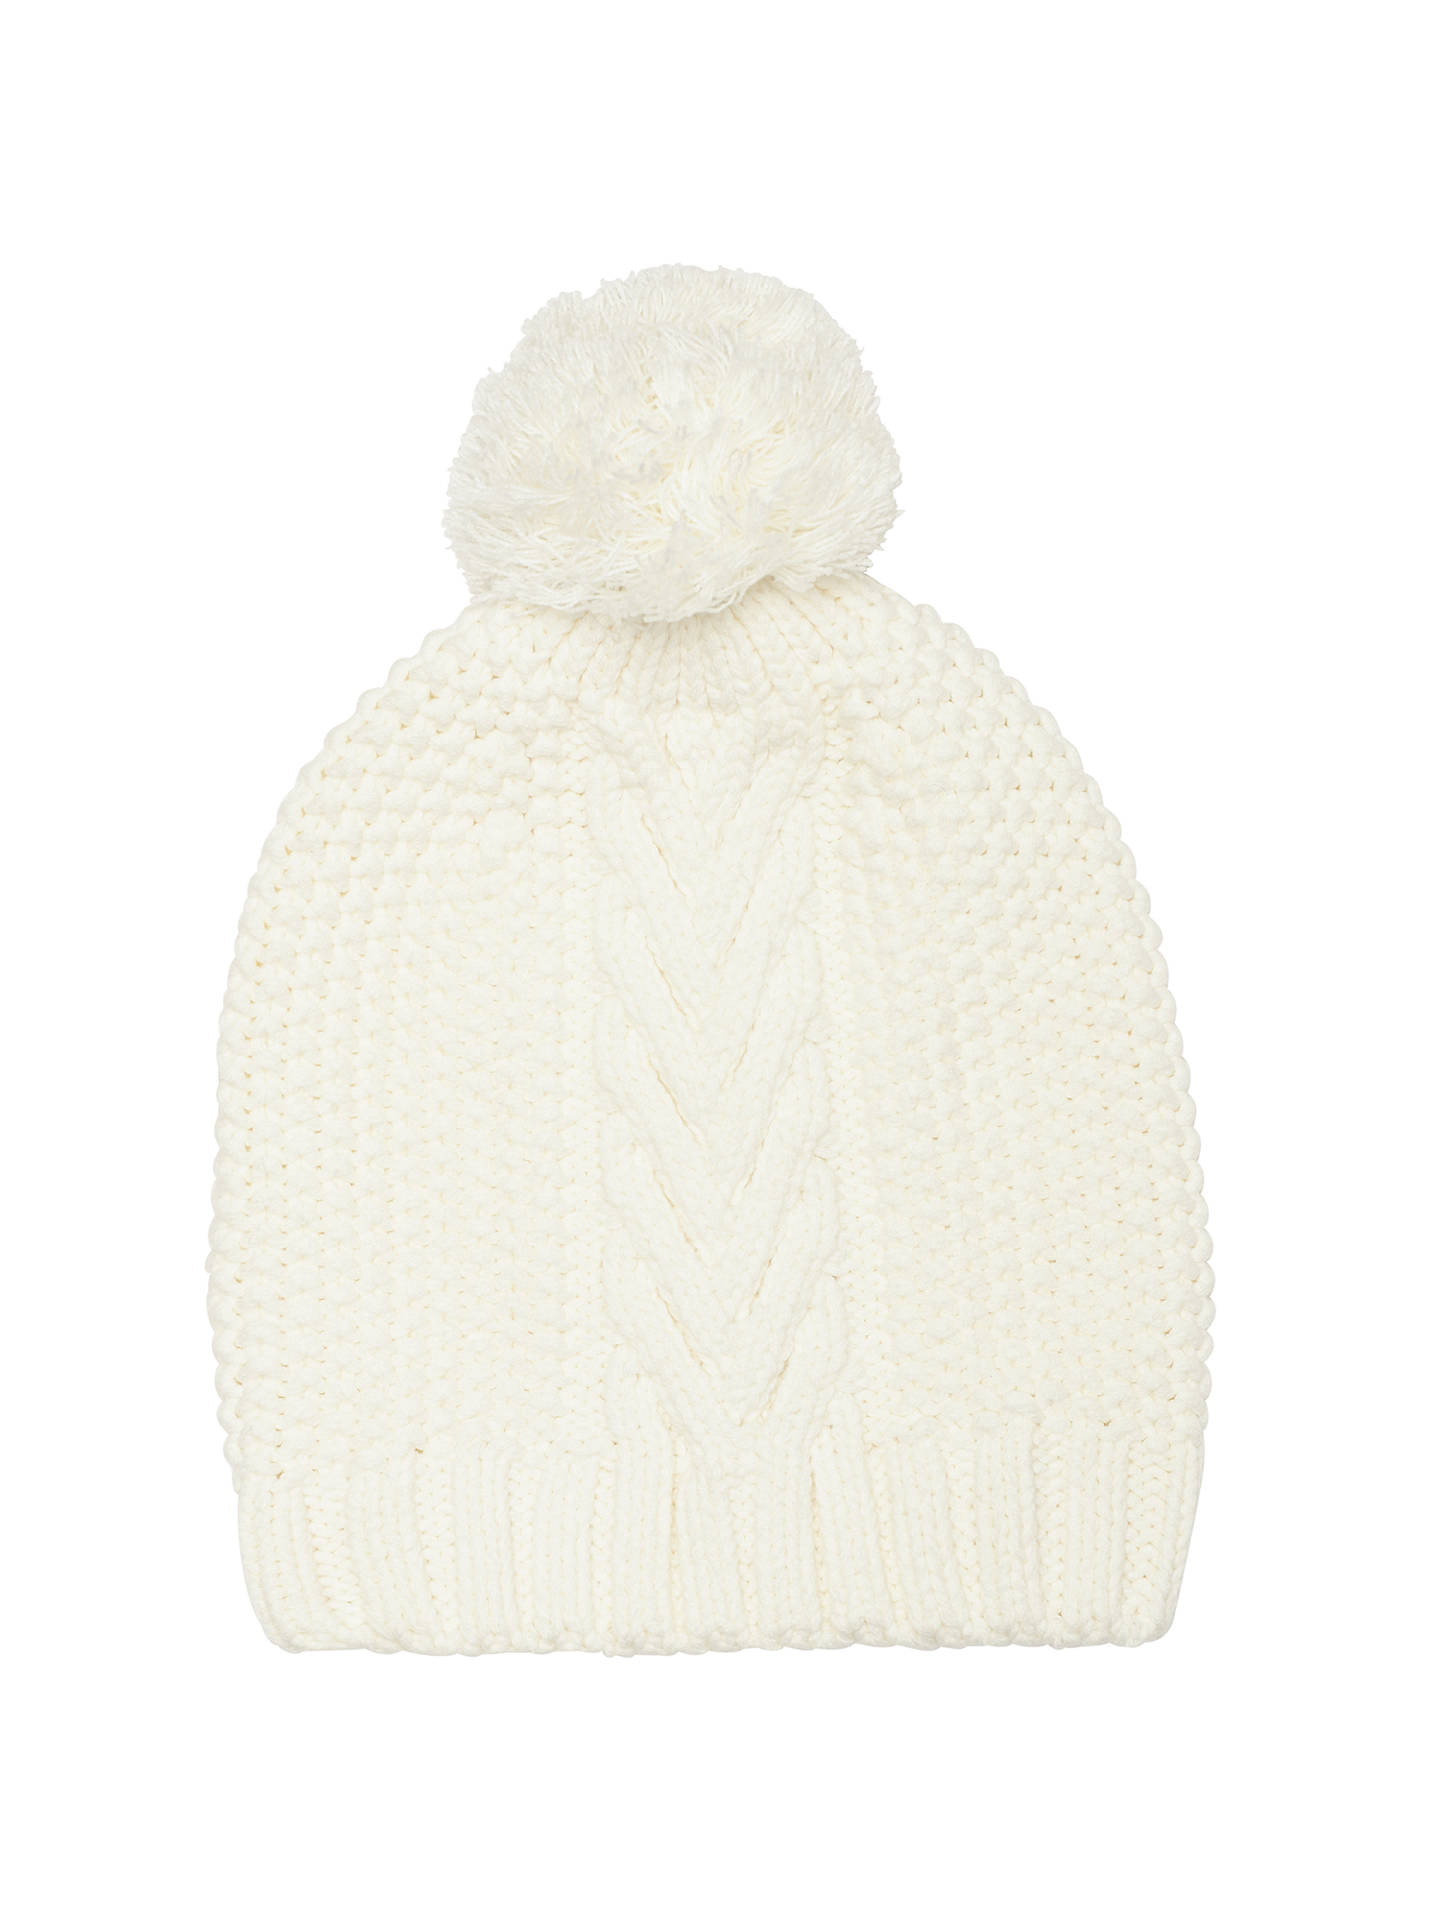 Buy John Lewis & Partners Purl Stitch Cable Beanie Hat, Cream Online at johnlewis.com